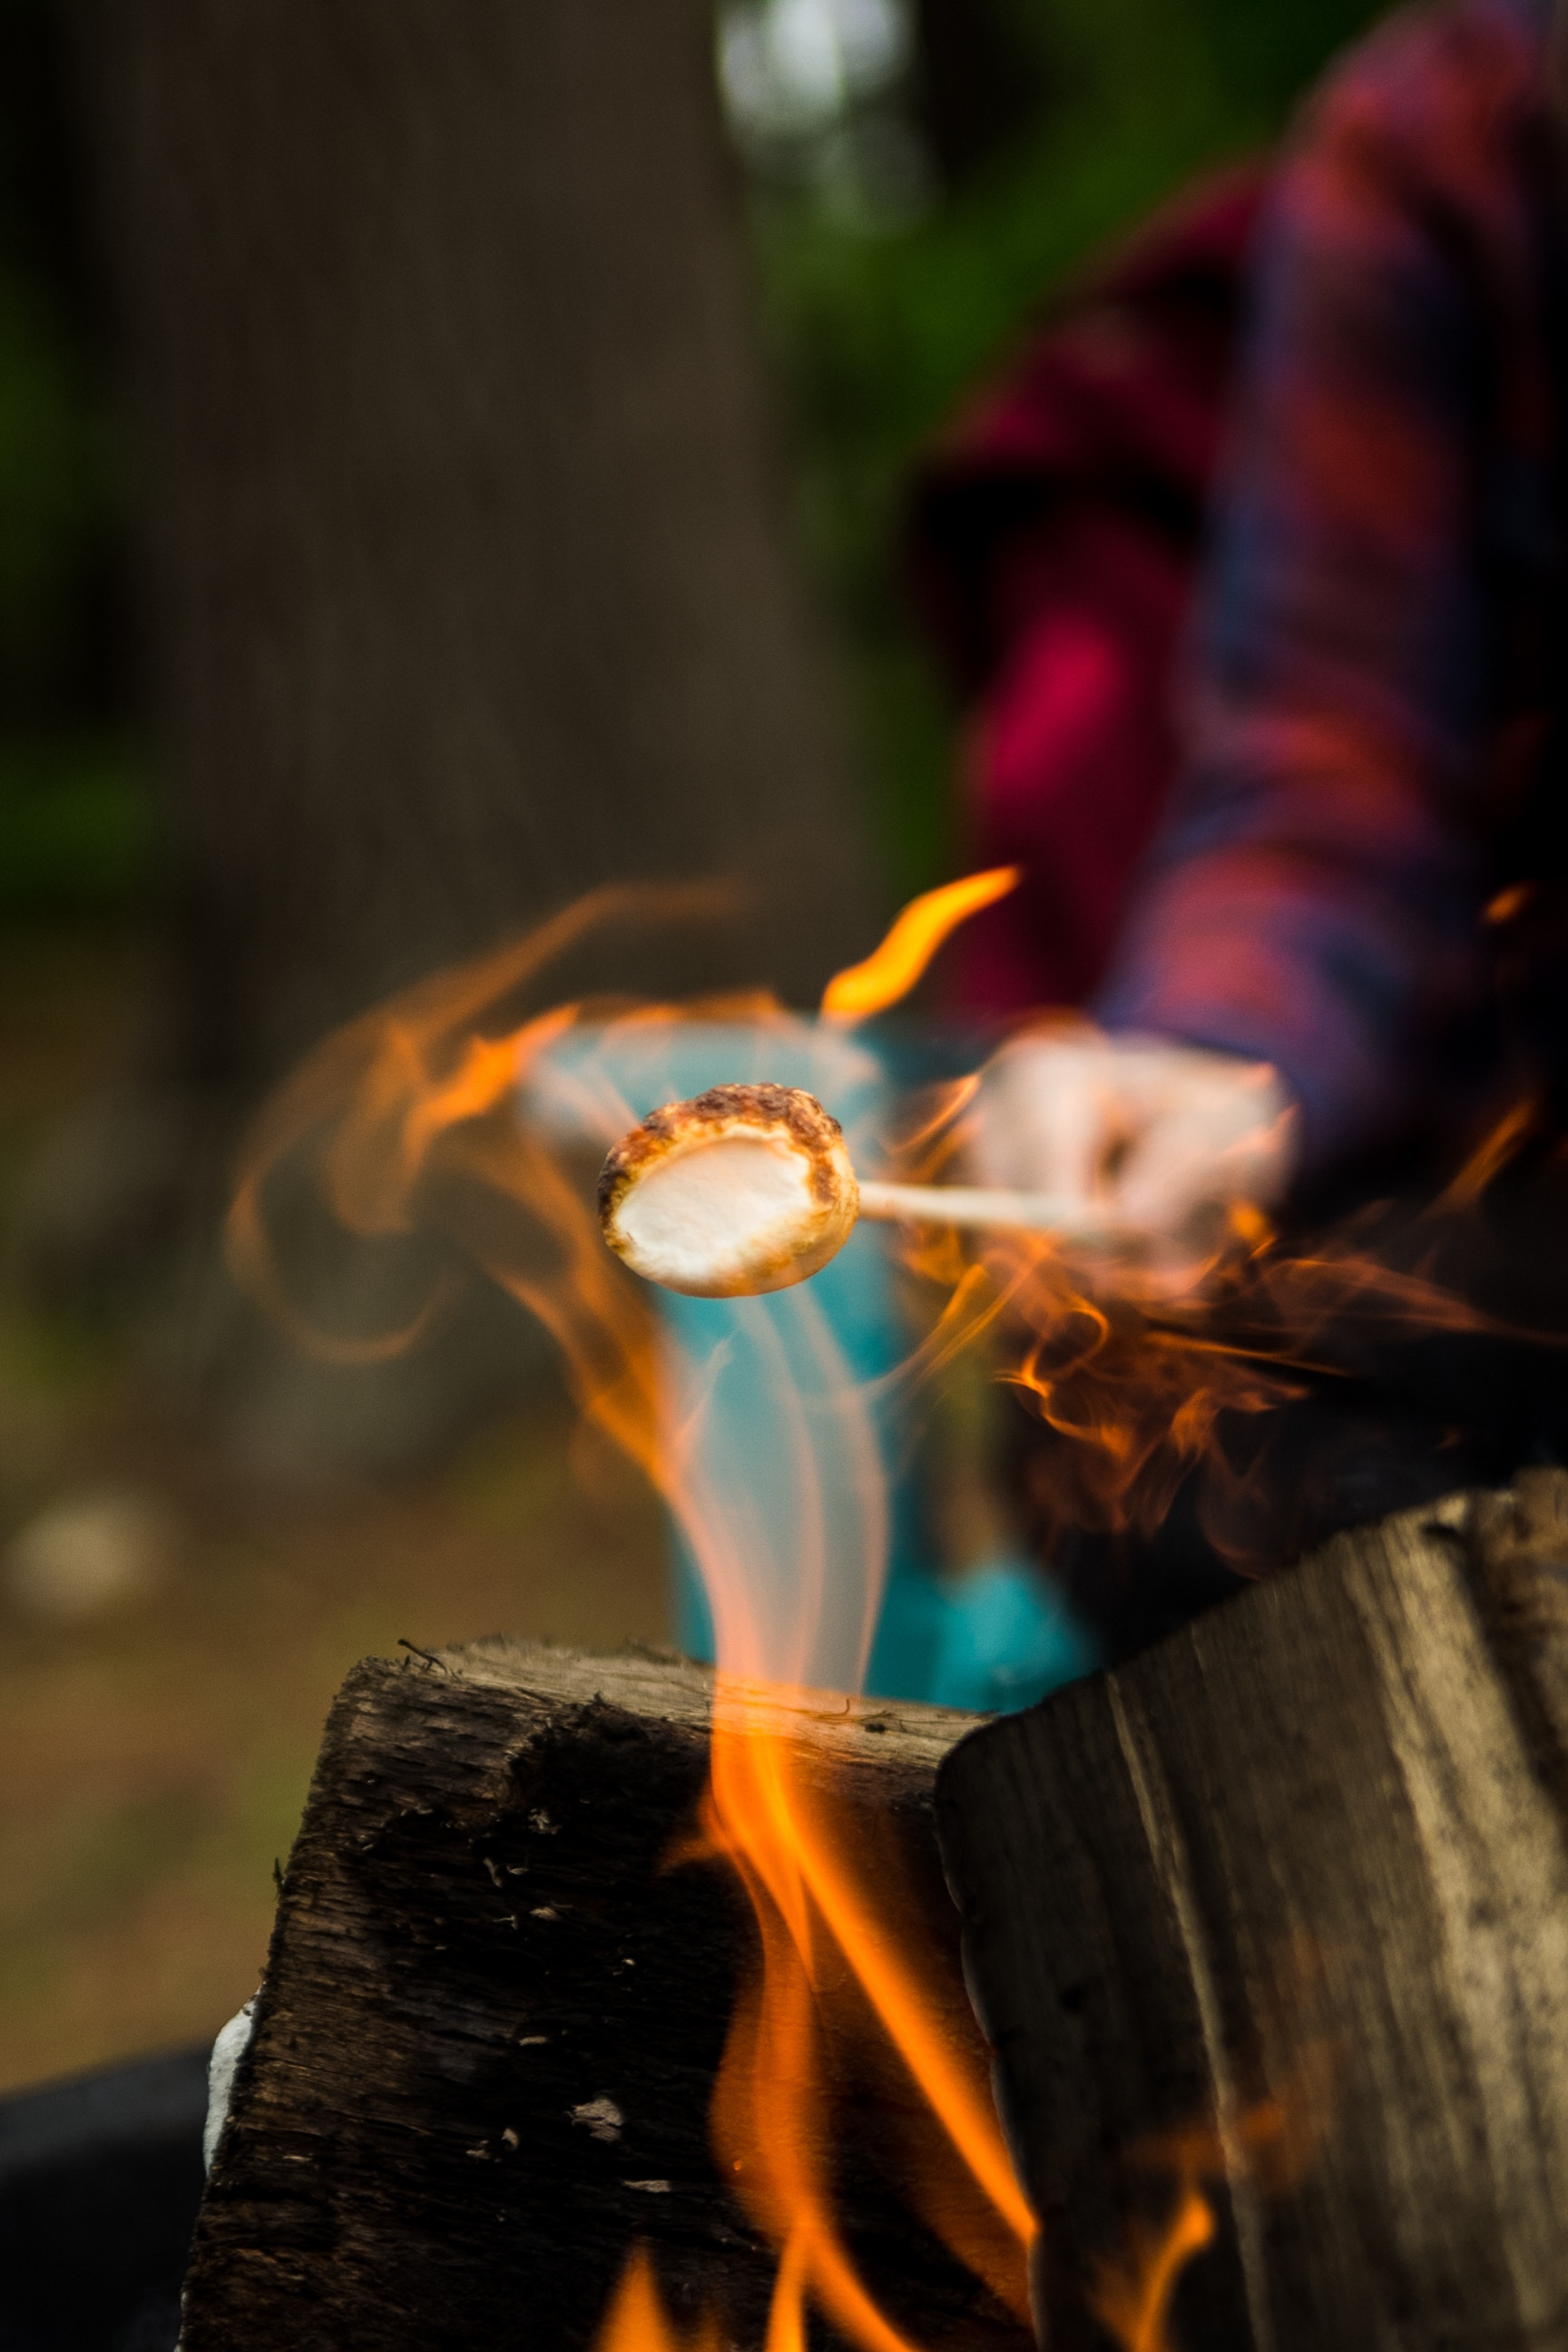 We present to you the summer guide for making s'mores.